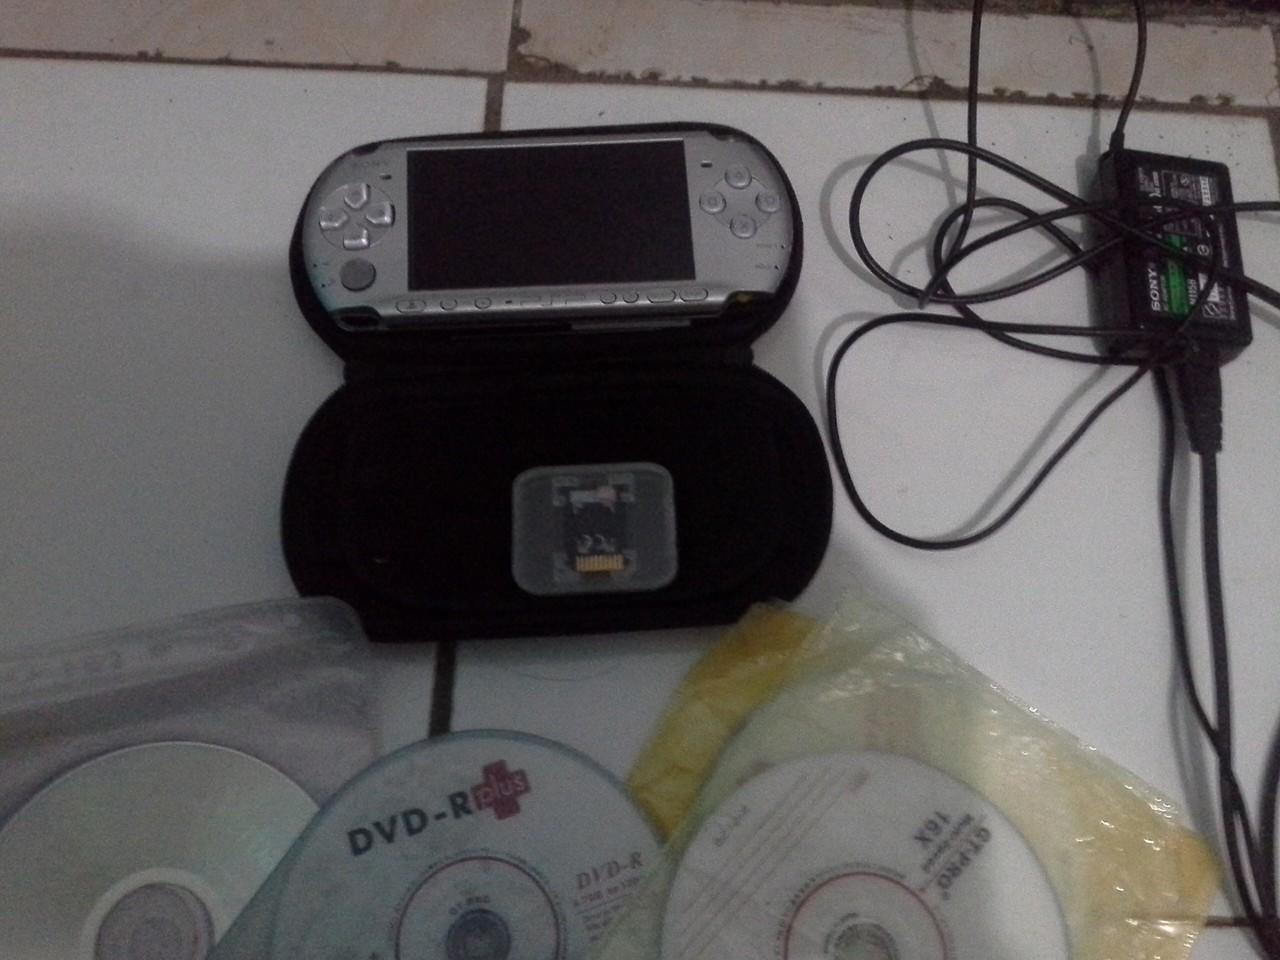 PSP 3006 Murah memory magic gate supported banyak bonus